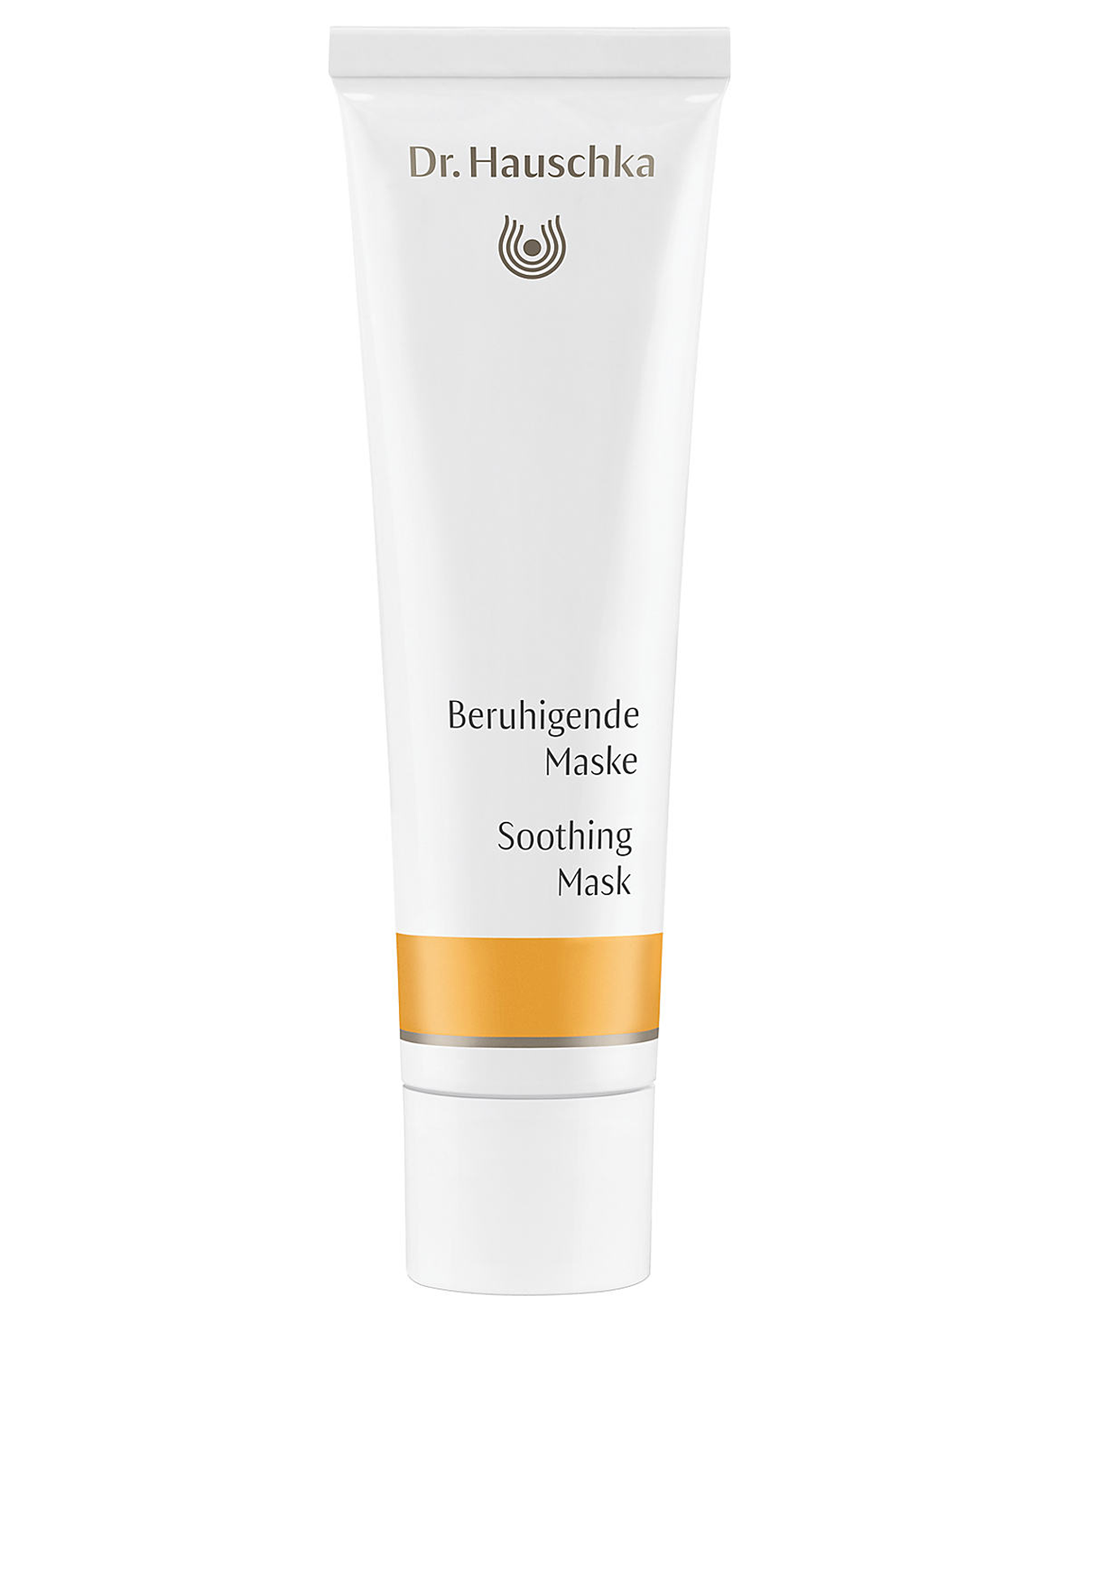 Dr. Hauschka Soothing Mask, 30ml